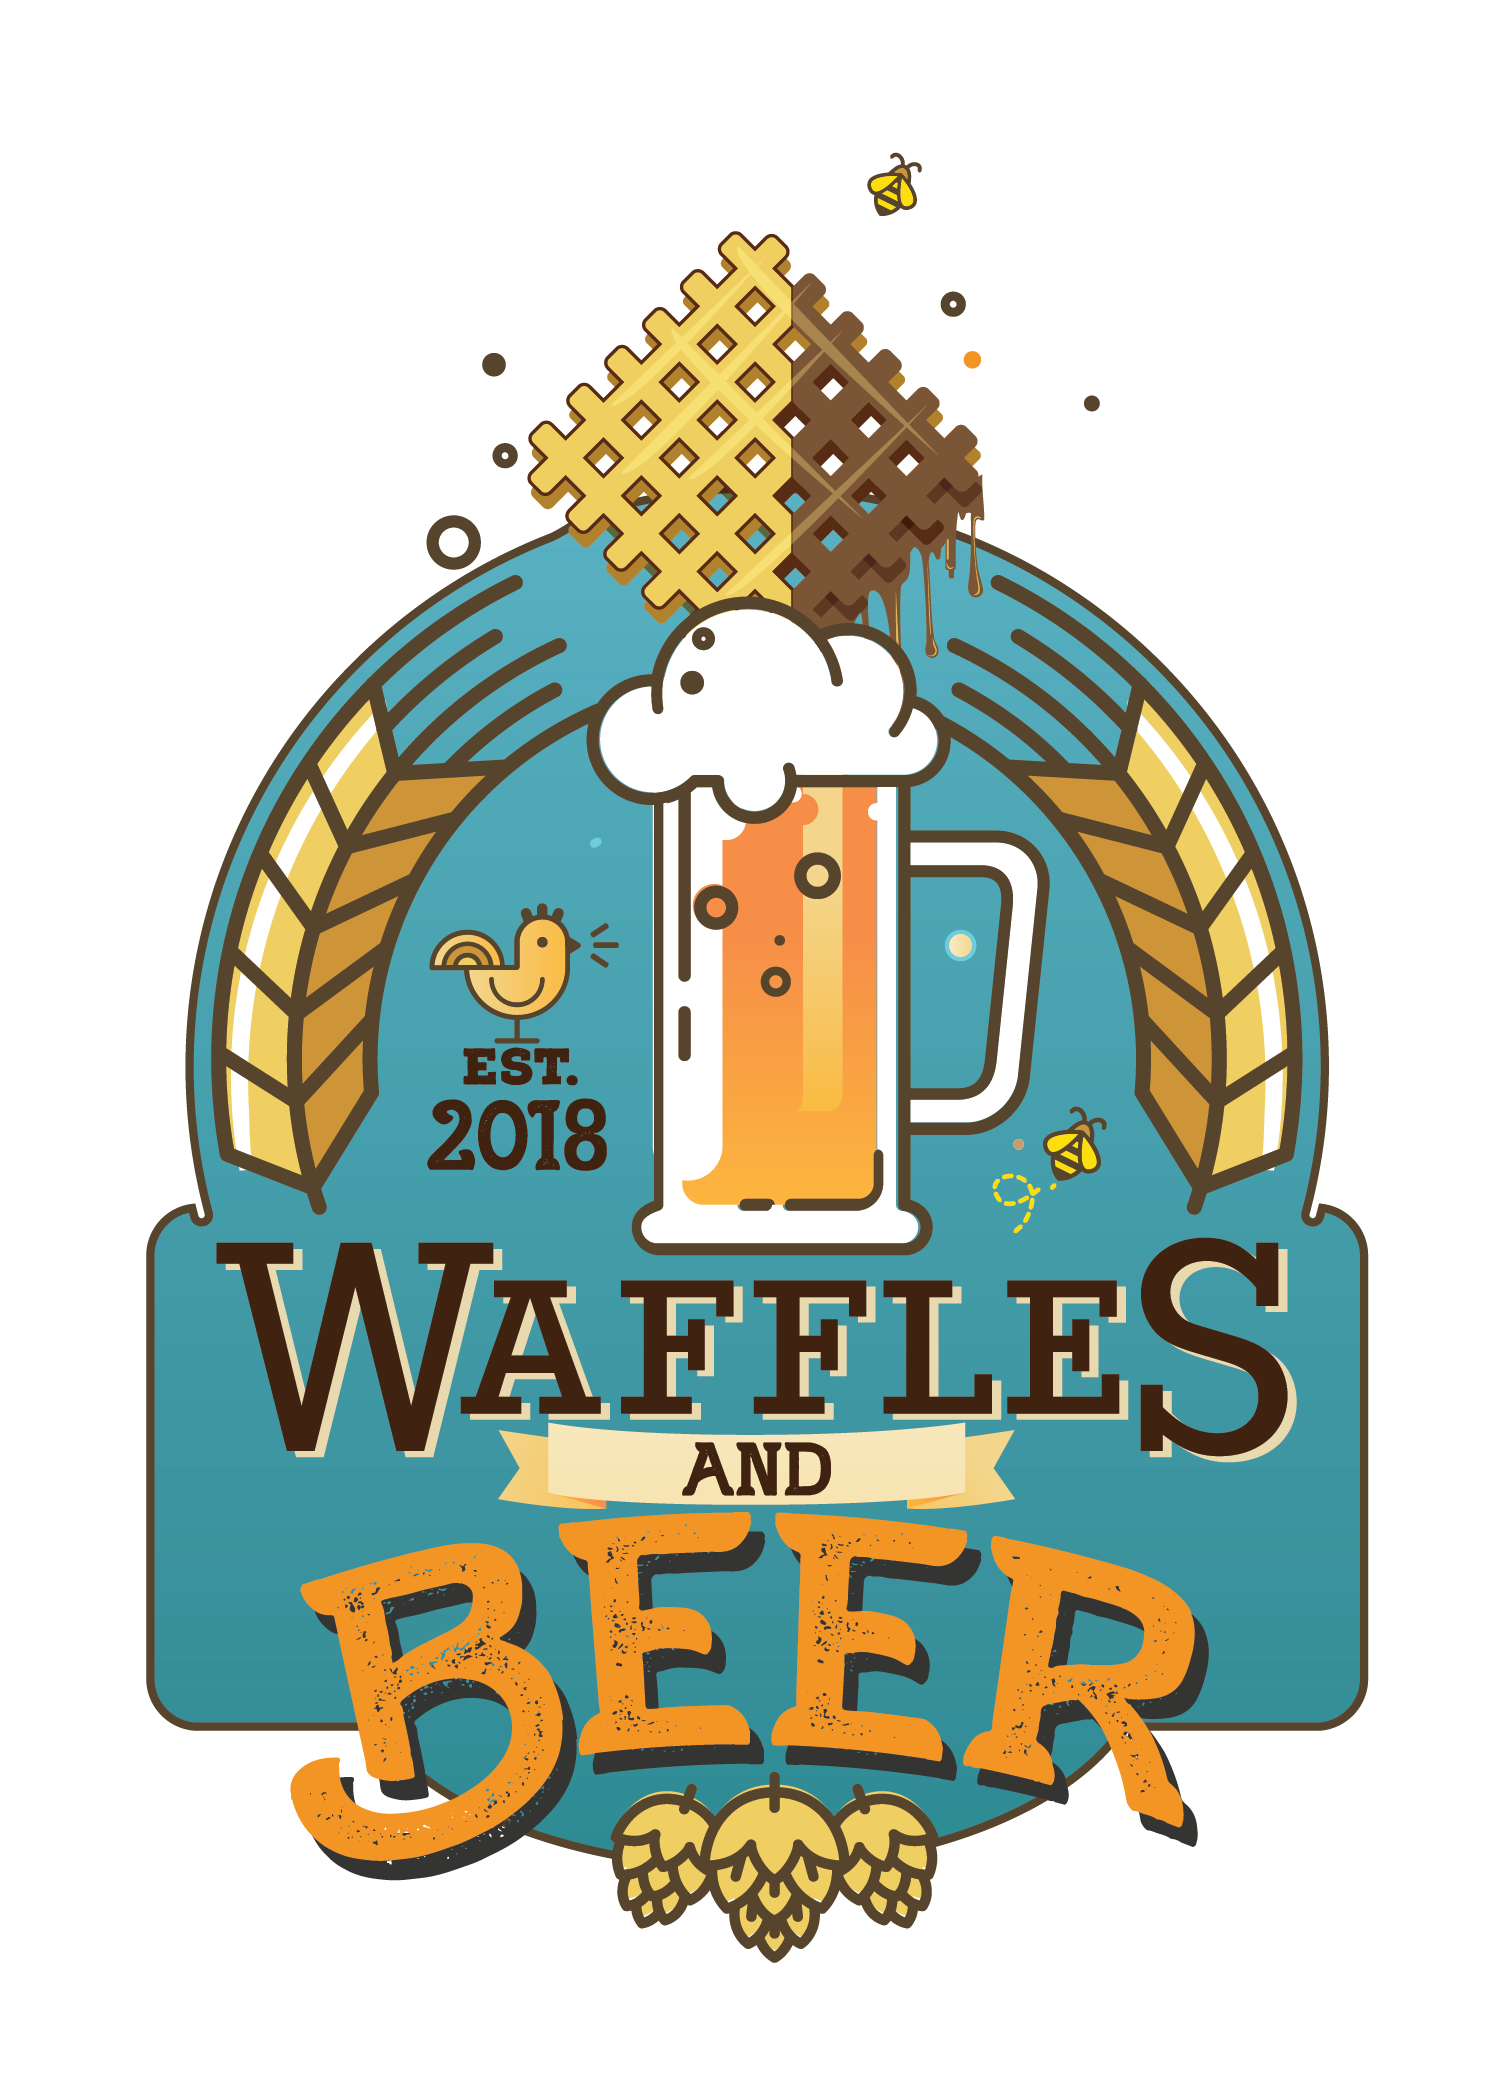 Waffle clipart square. Waffles and beer festival